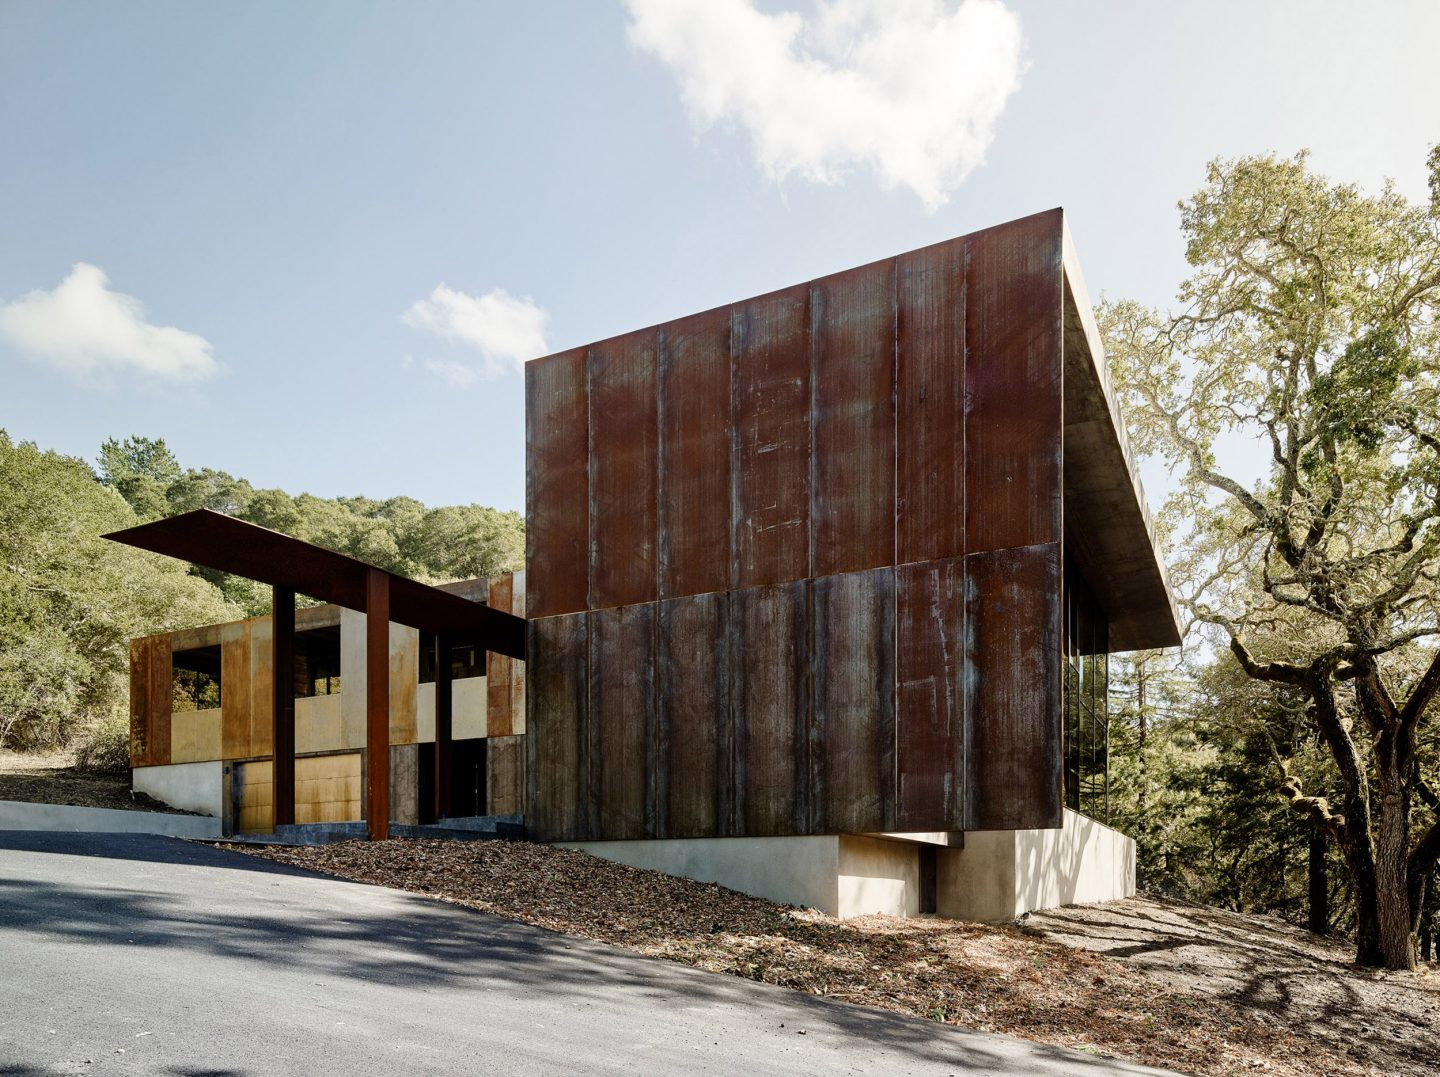 iGNANT-Architecture-Faulker-Architects-Weathering-Steel-Home-002